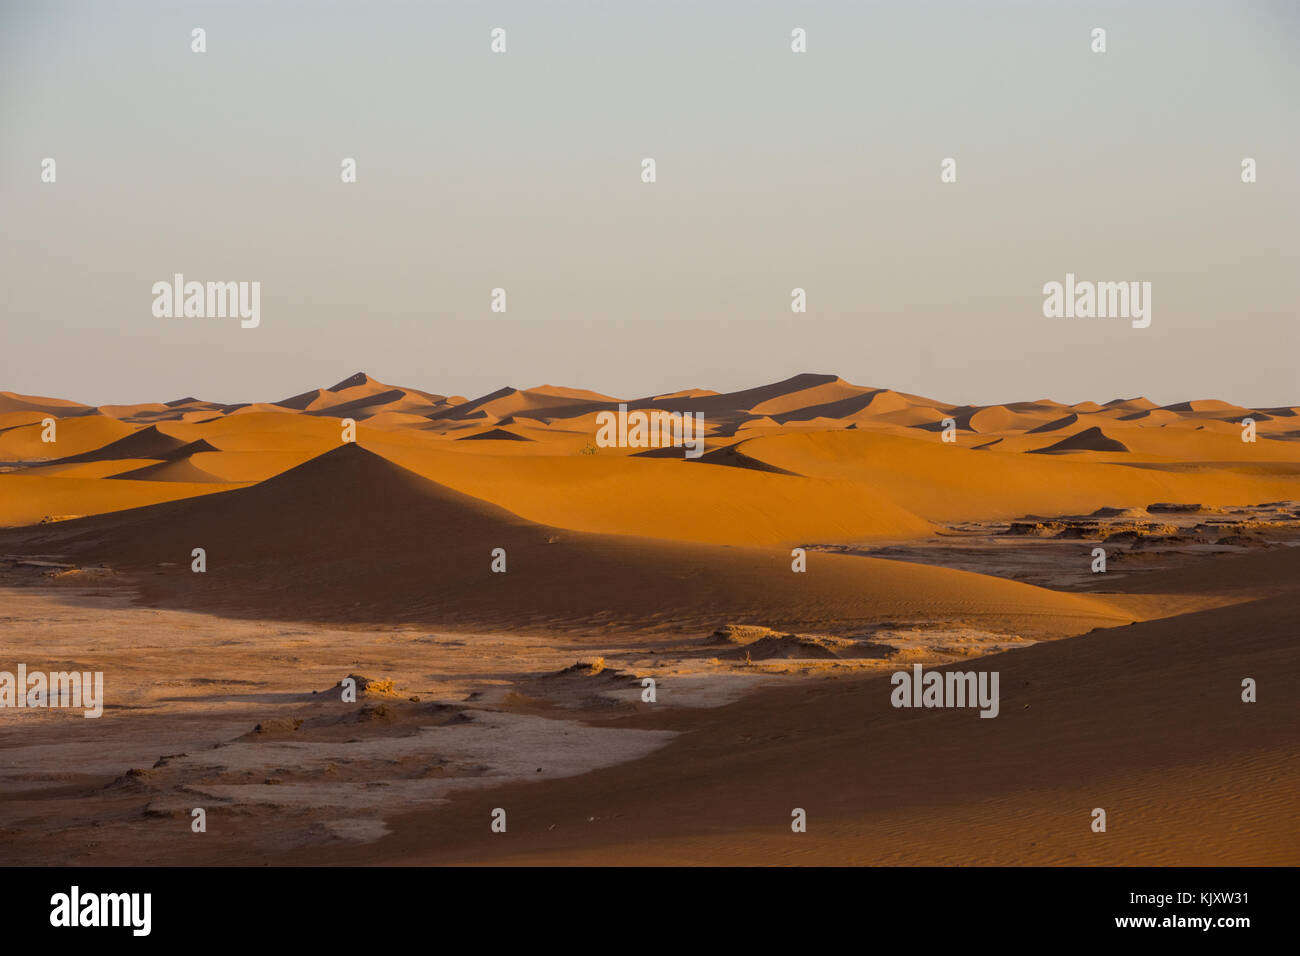 The largest desert in the world 79